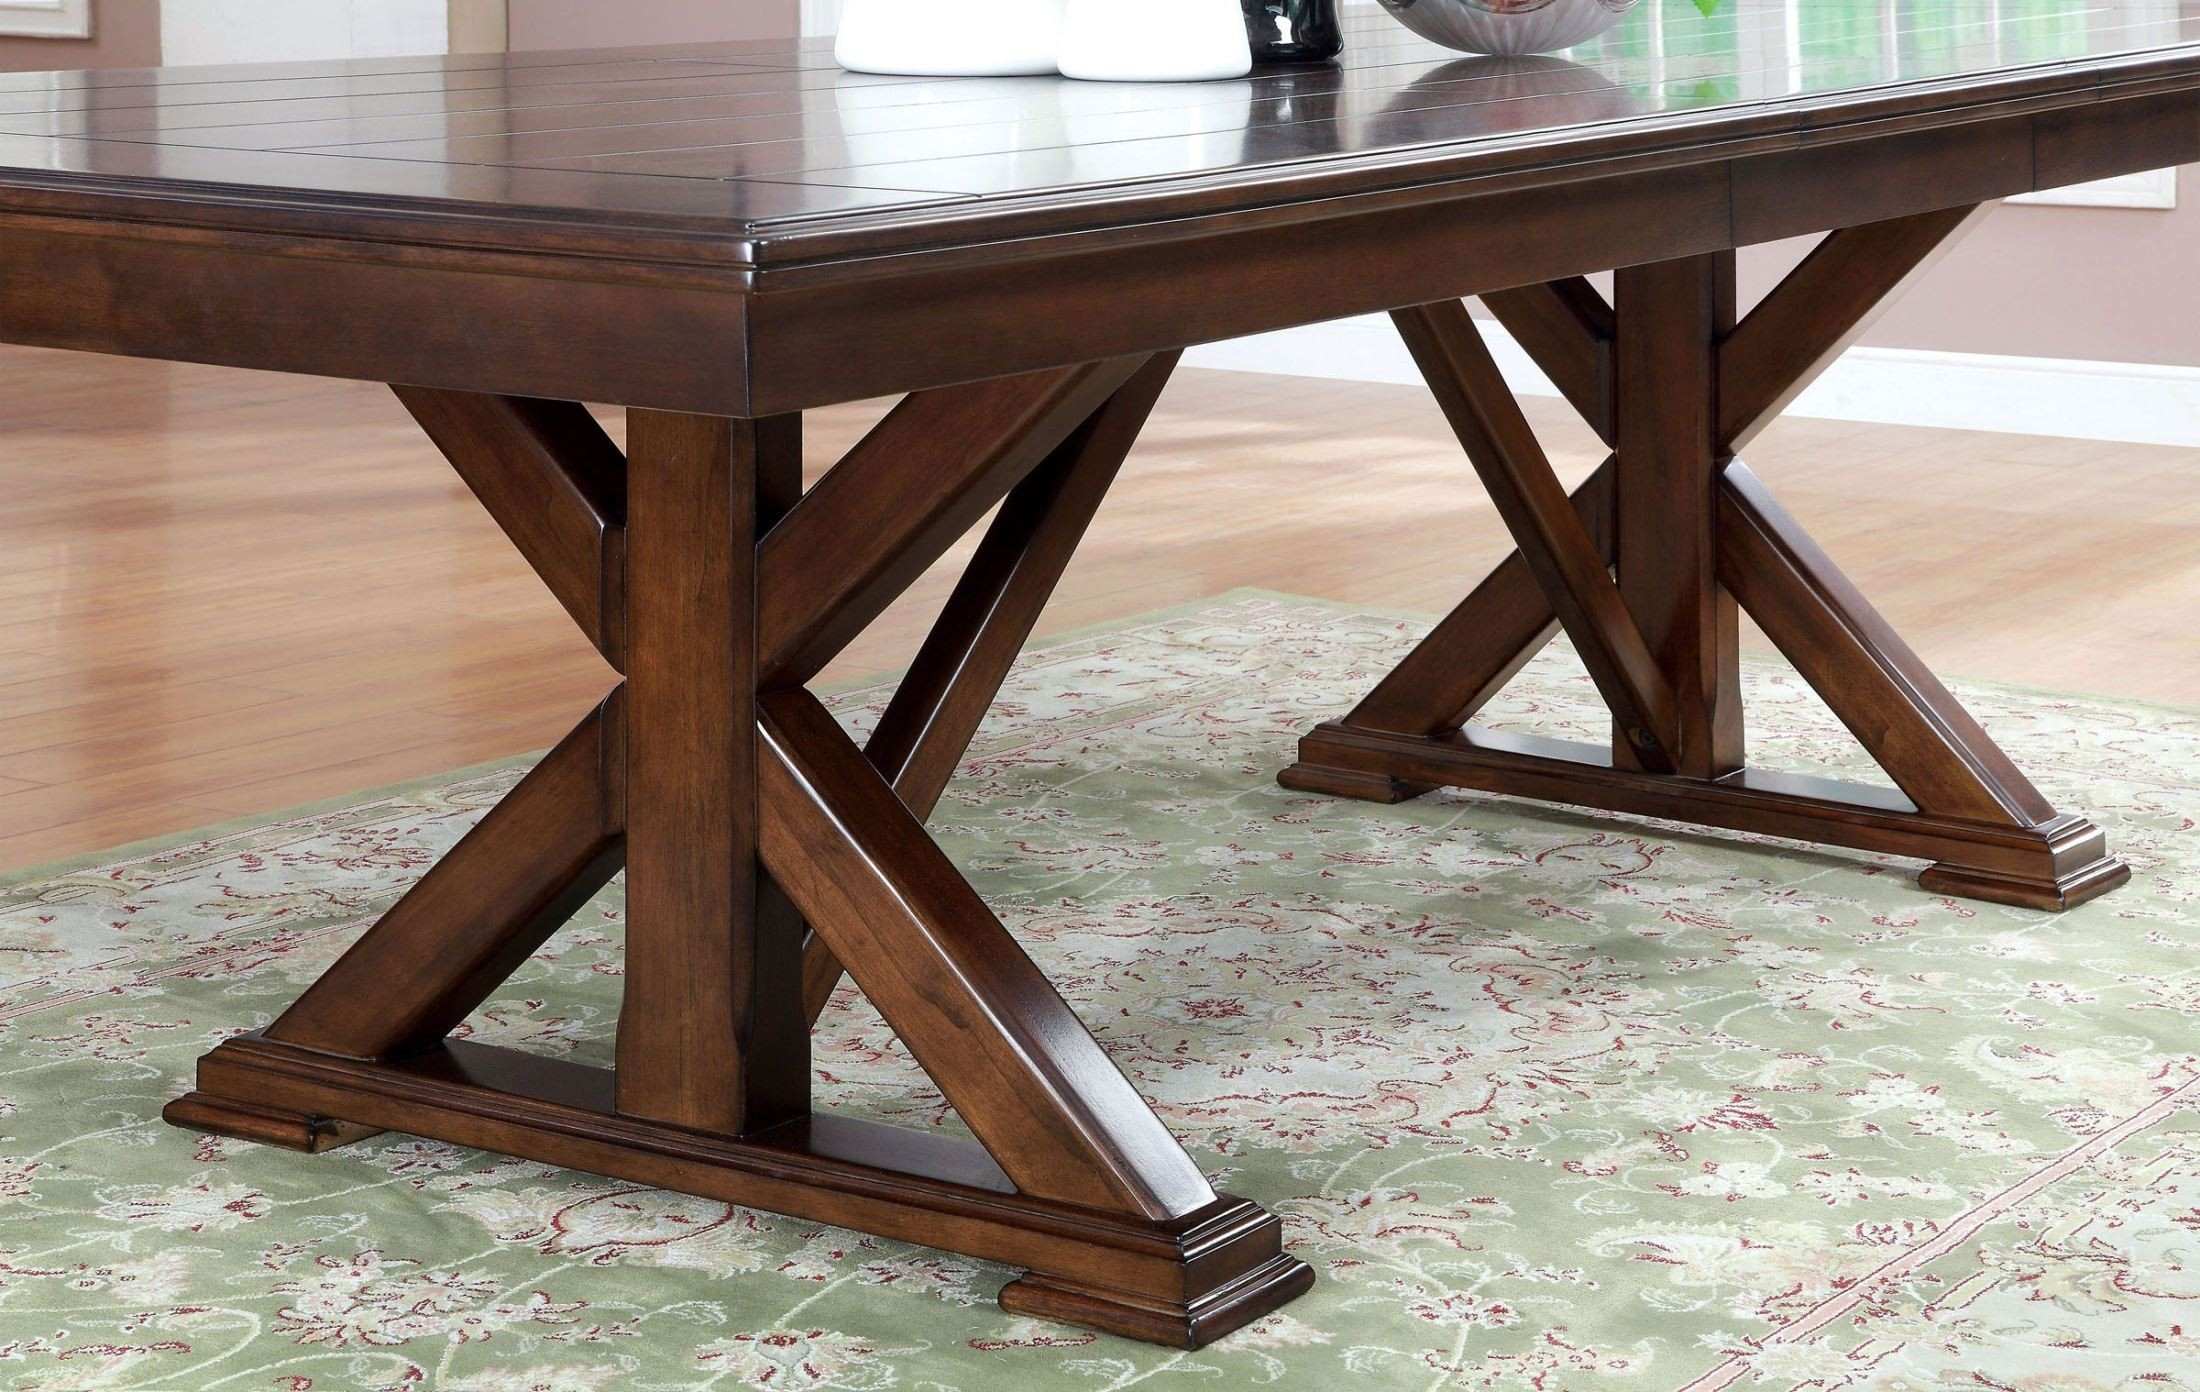 Descanso Brown Cherry Rectangular Extendable Trestle  : cm3558t table from colemanfurniture.com size 2200 x 1392 jpeg 683kB